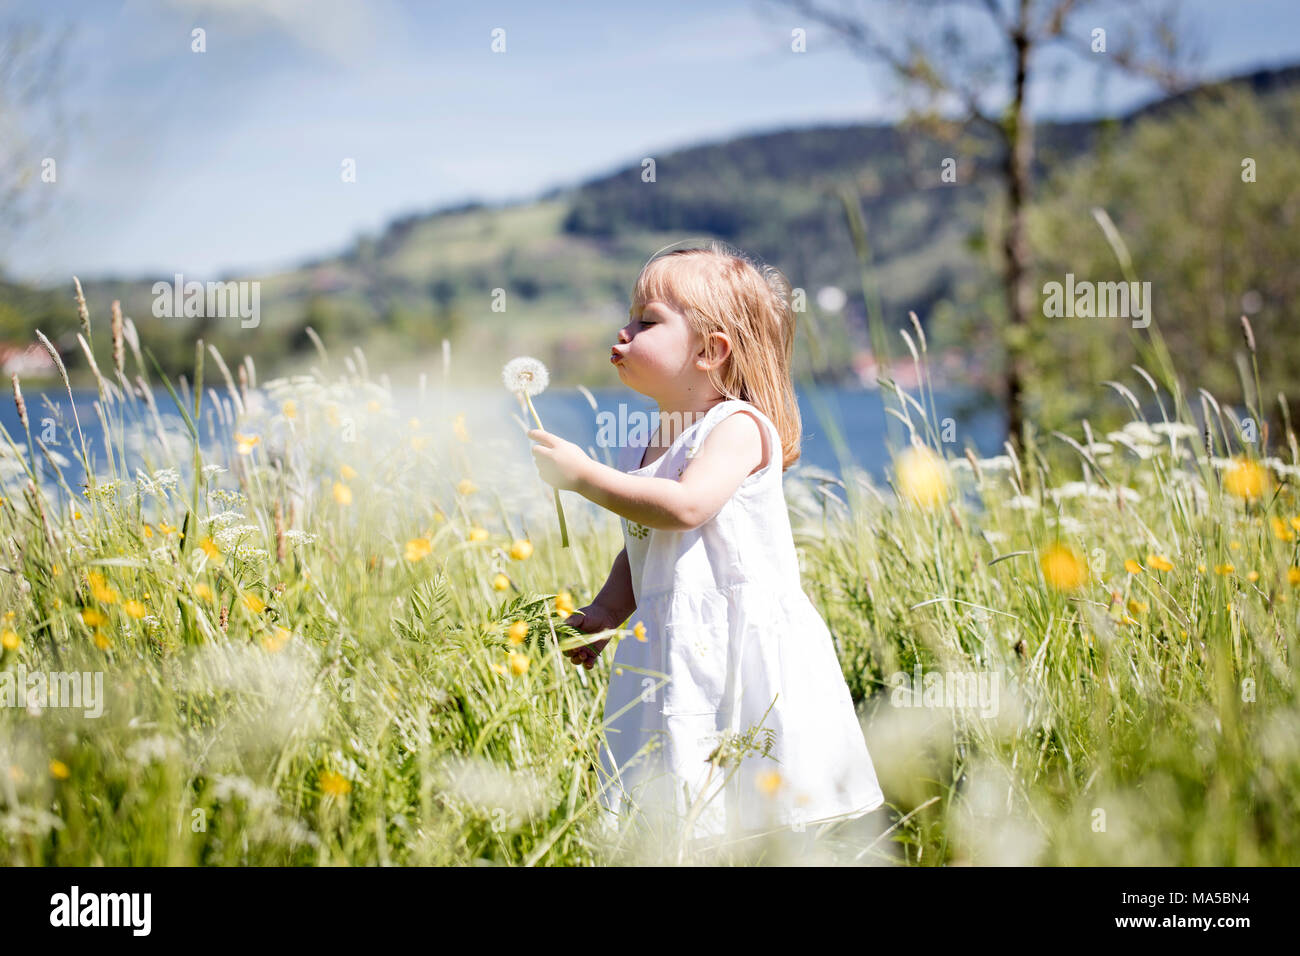 Mother and child on a flowering meadow, the child picks flowers - Stock Image